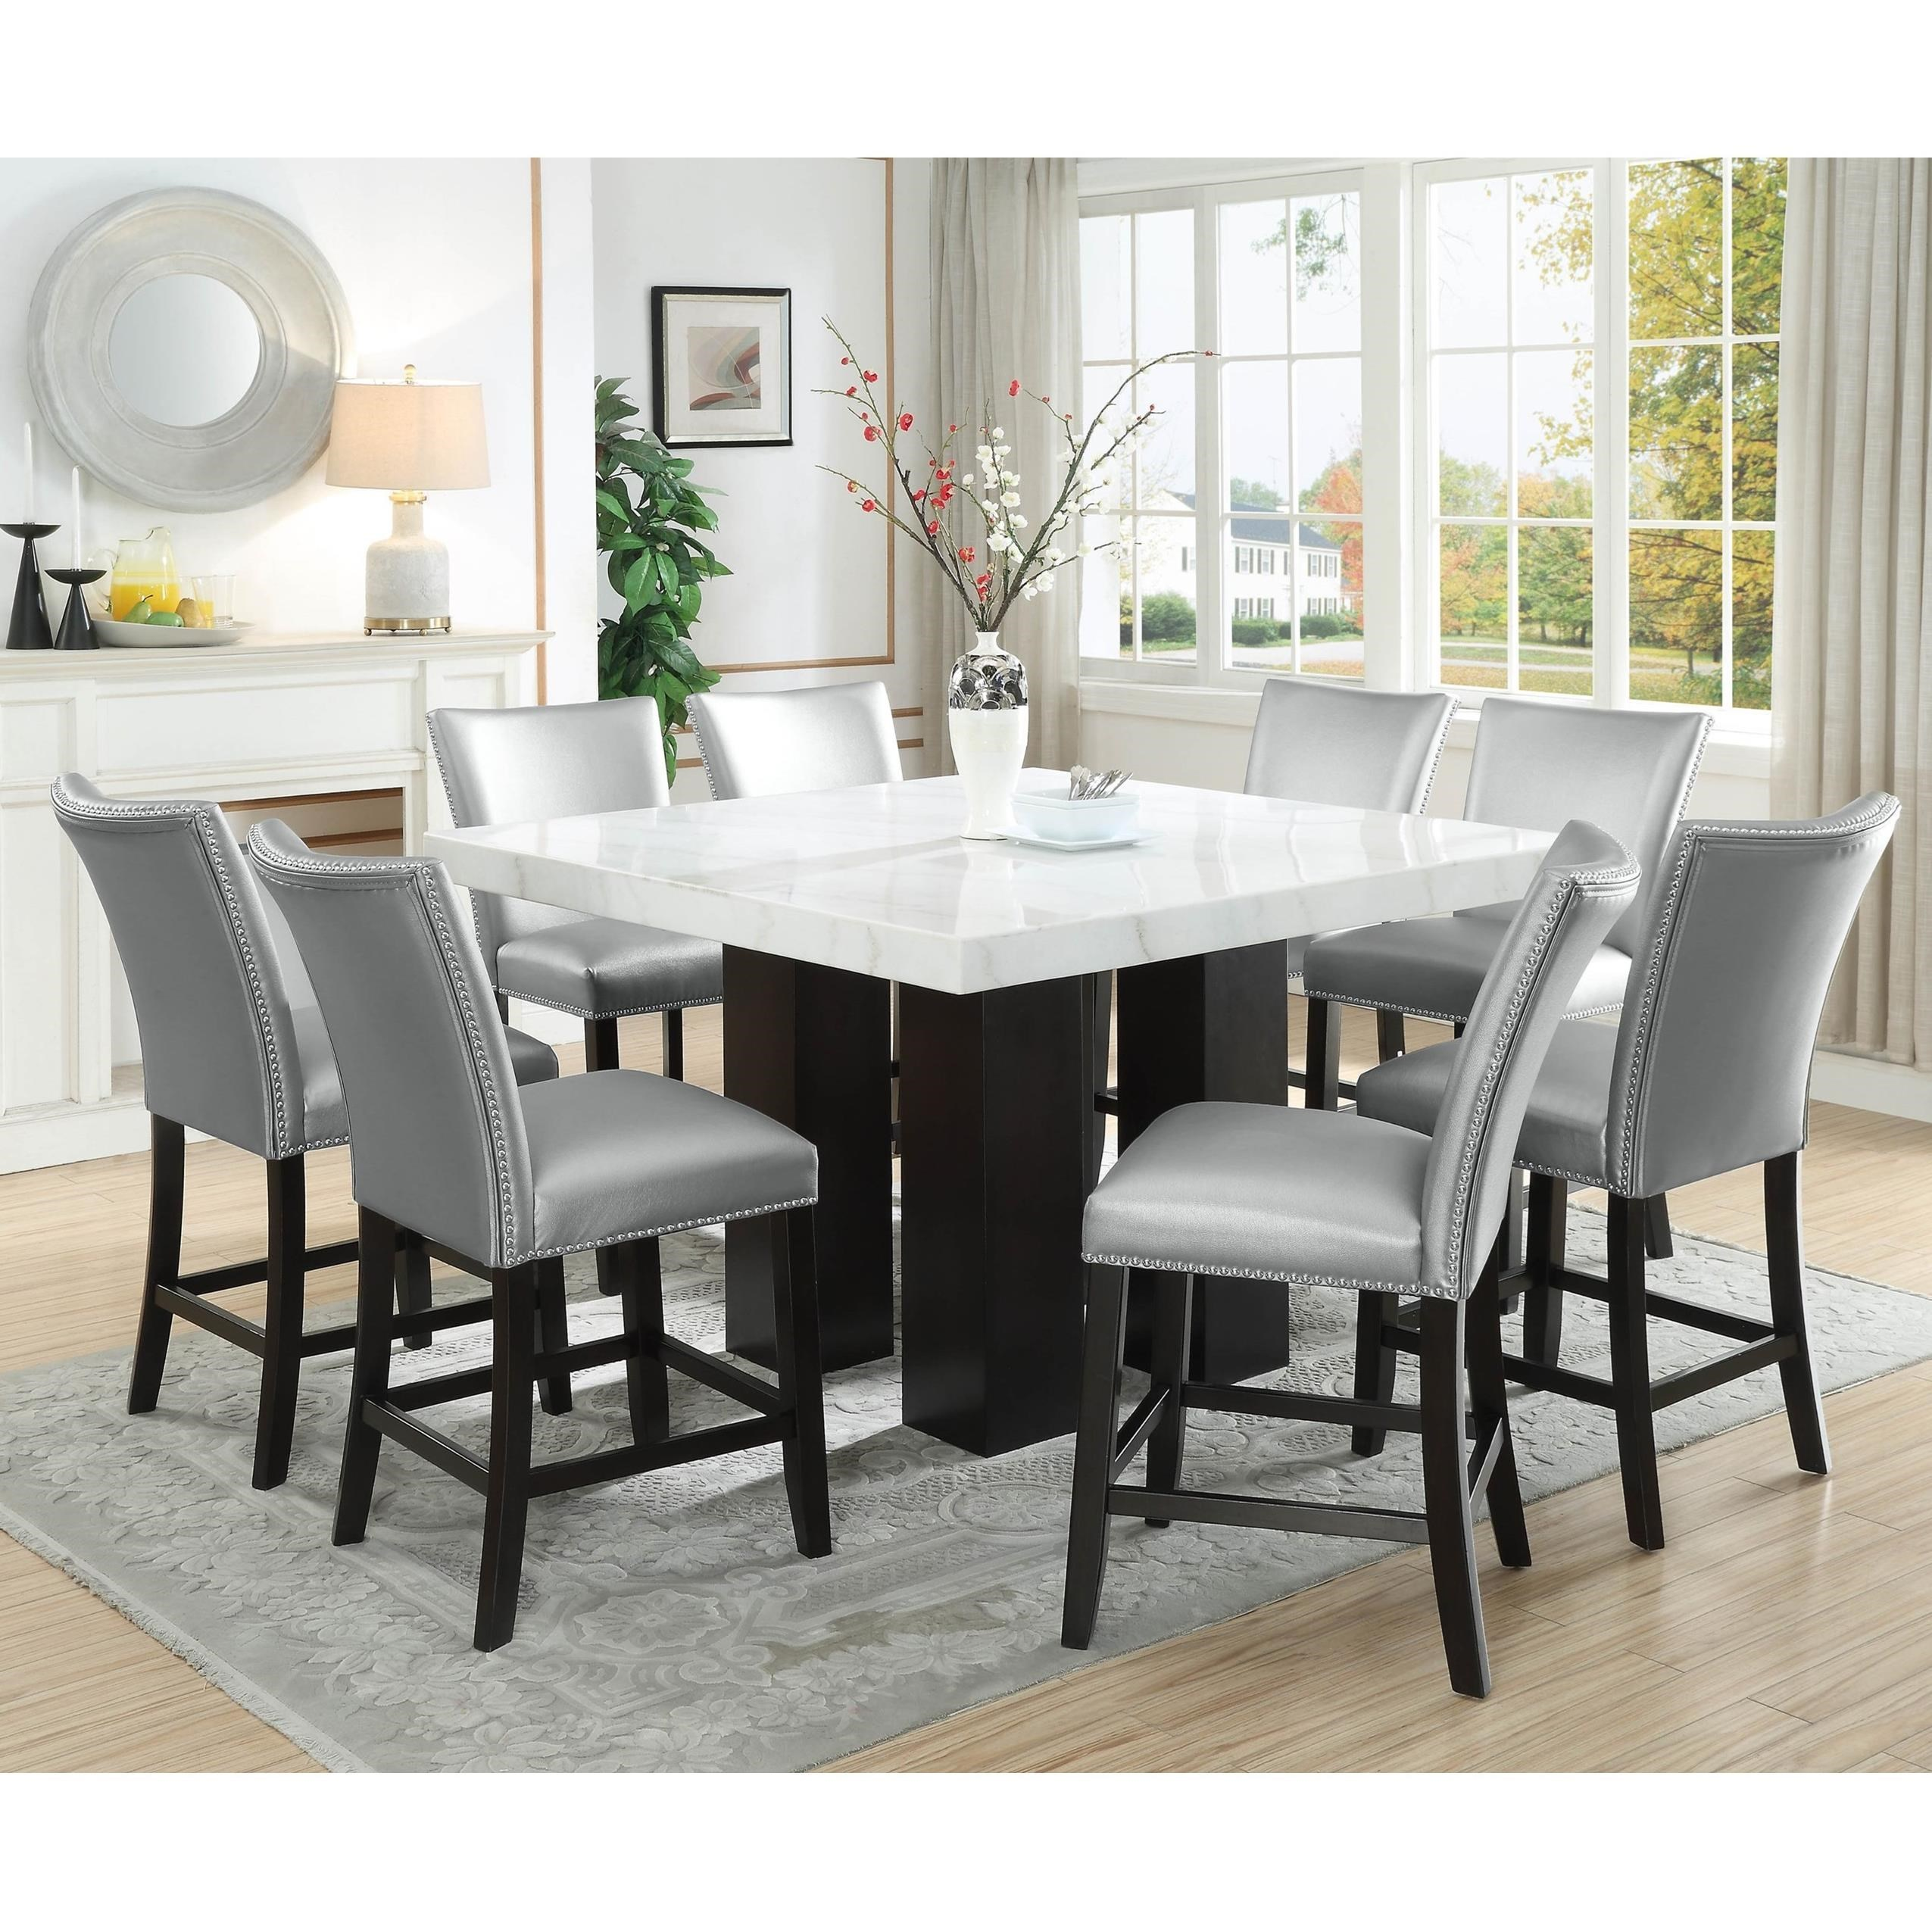 Modern Dining Set Camila 9 Piece Counter Height Dining Set With Marble Top By Vendor 3985 At Becker Furniture World